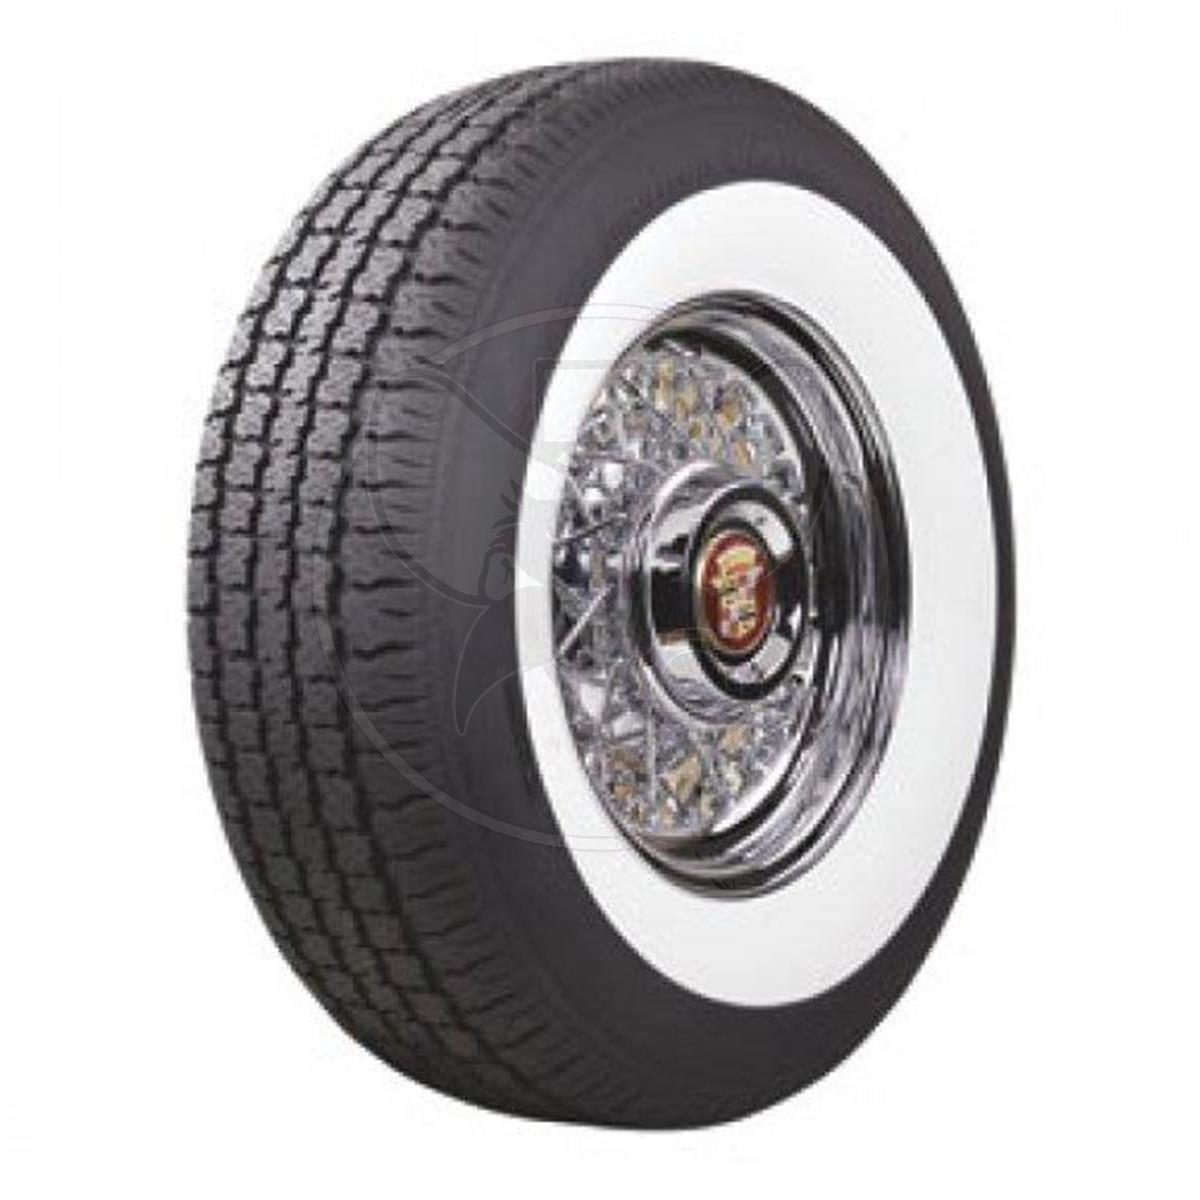 whitewall 75r15 tyre radial american classic